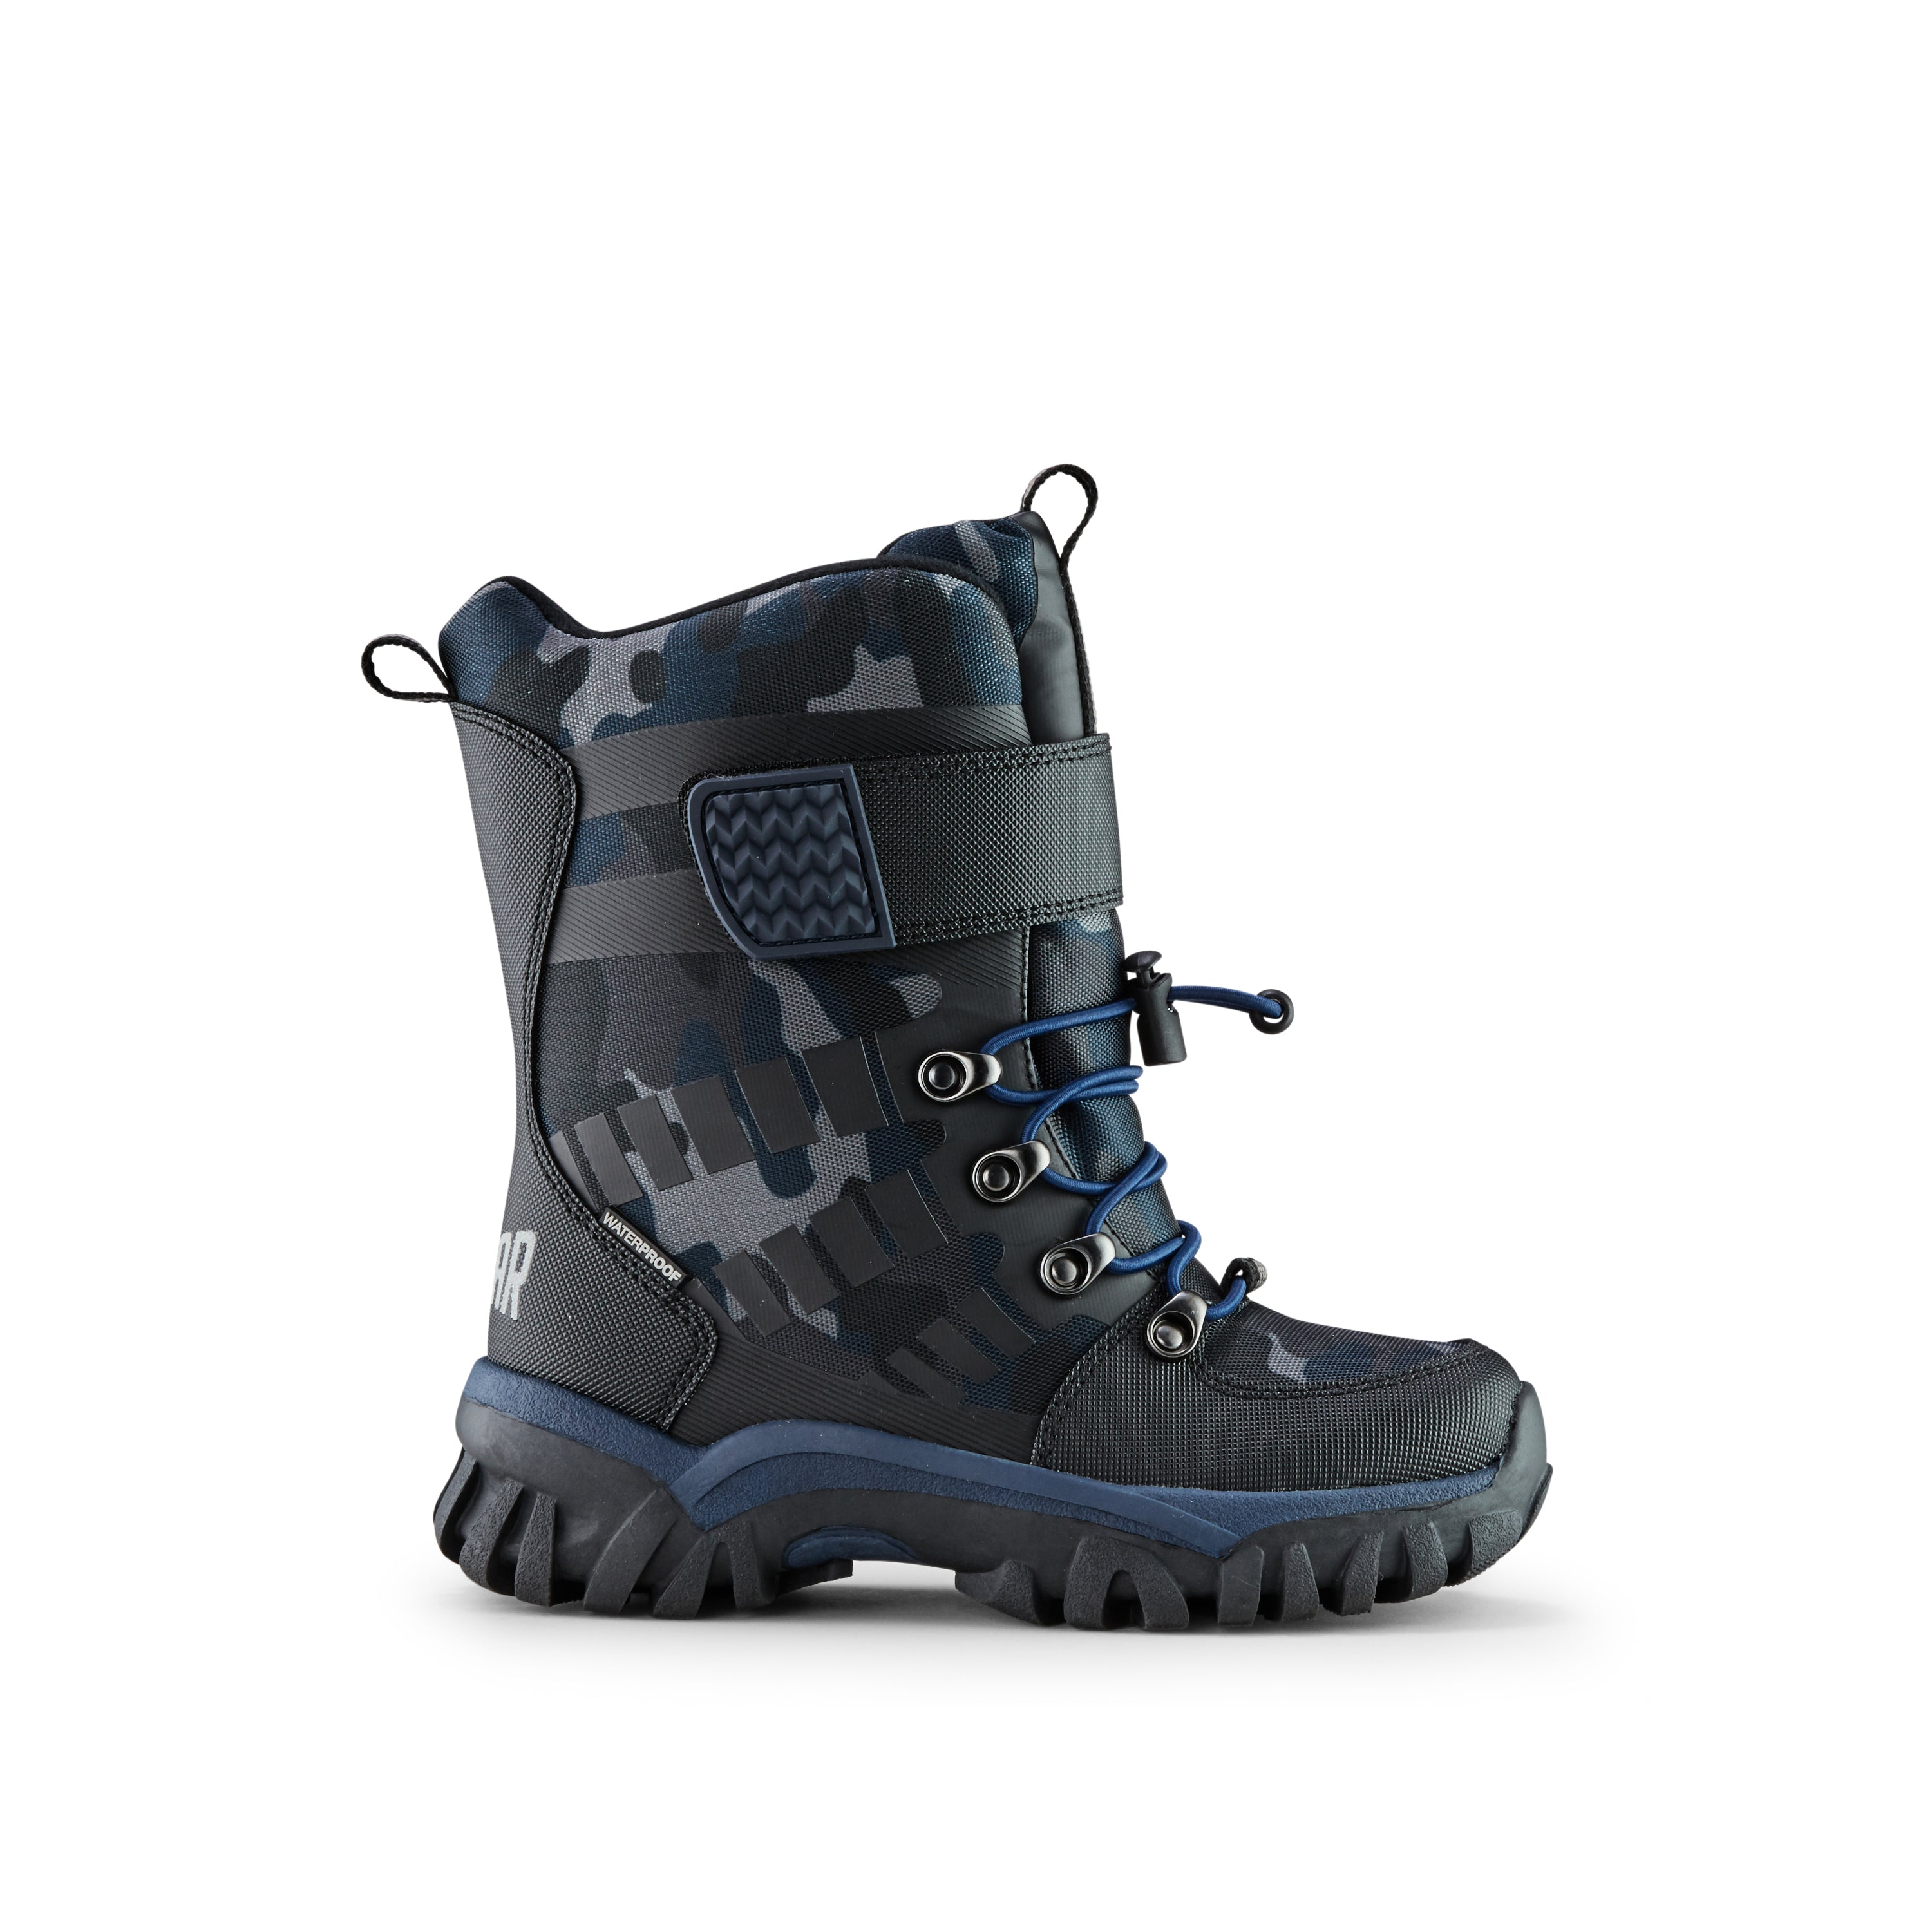 Cougar Kids' Winter Boots- Trek. Easy pull-on kid's winter boot with hook and loop strap closure. Always Waterproof